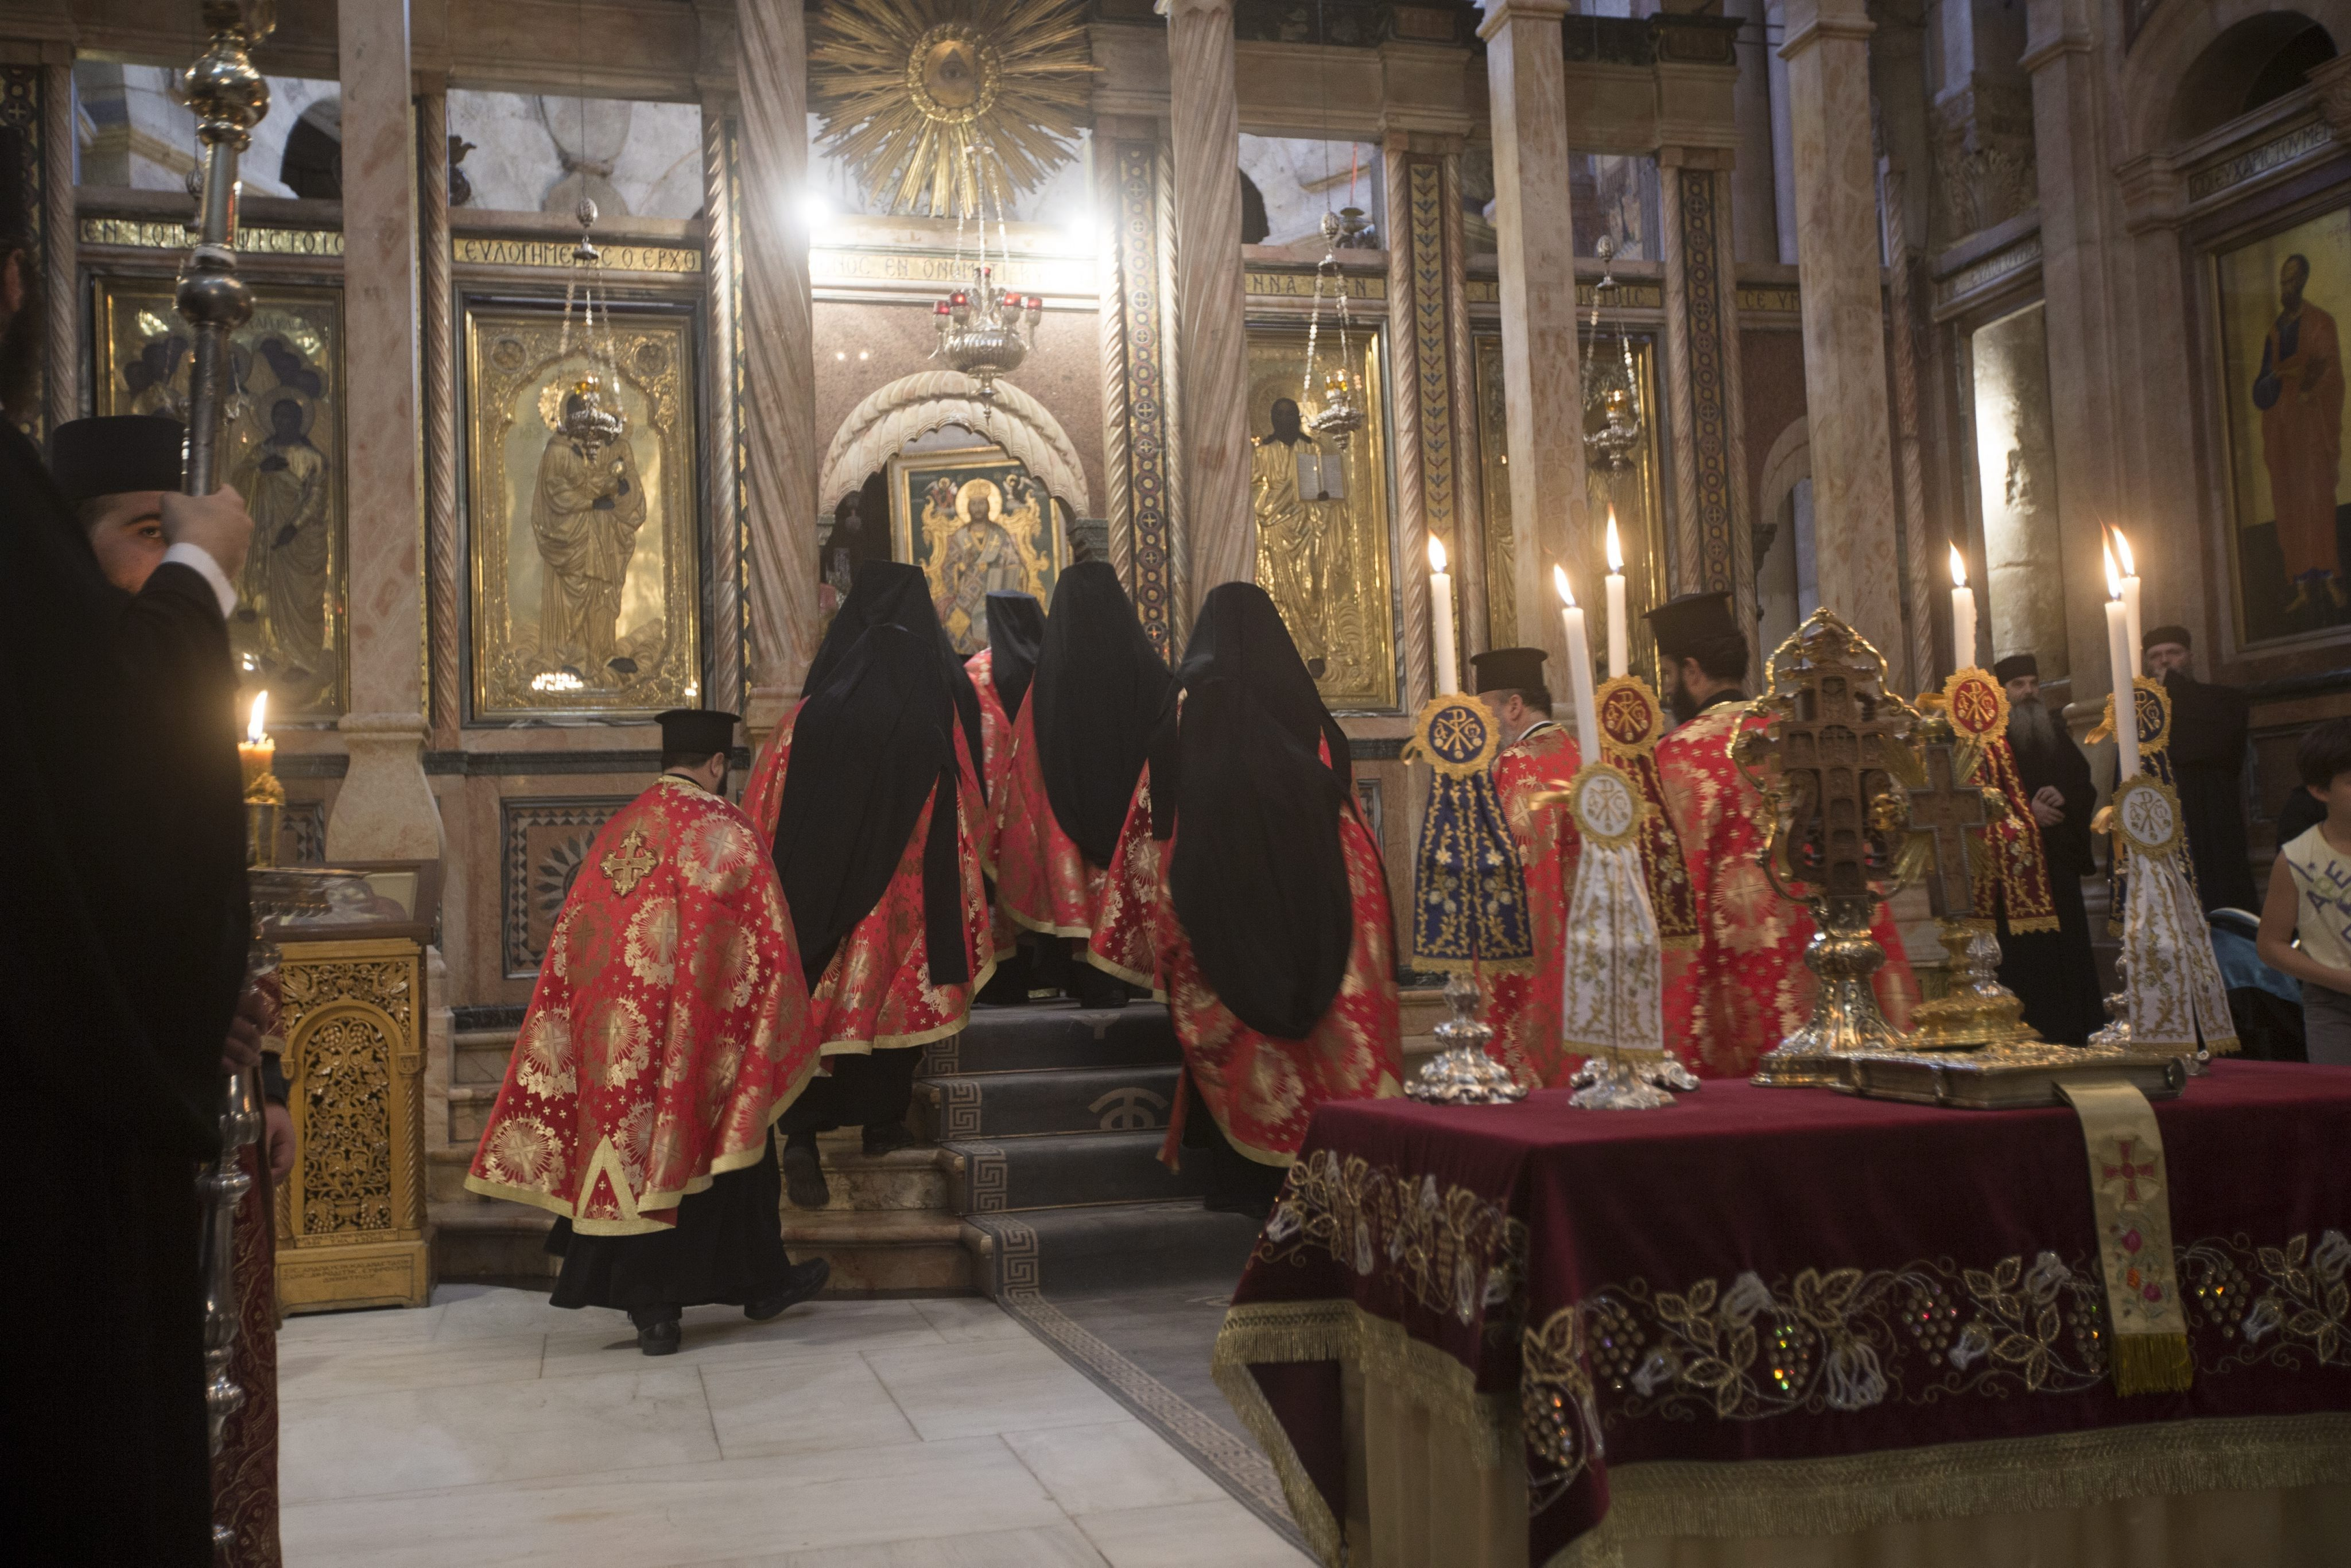 Greeks orthodox clergy during a Mass at the Church of the Holy Sepulchre, in the old city of Jerusalem, 28 October 2016. Archaeologist have for the first time in centuries exposed the original surface of what's believed to be the traditionally burial plac